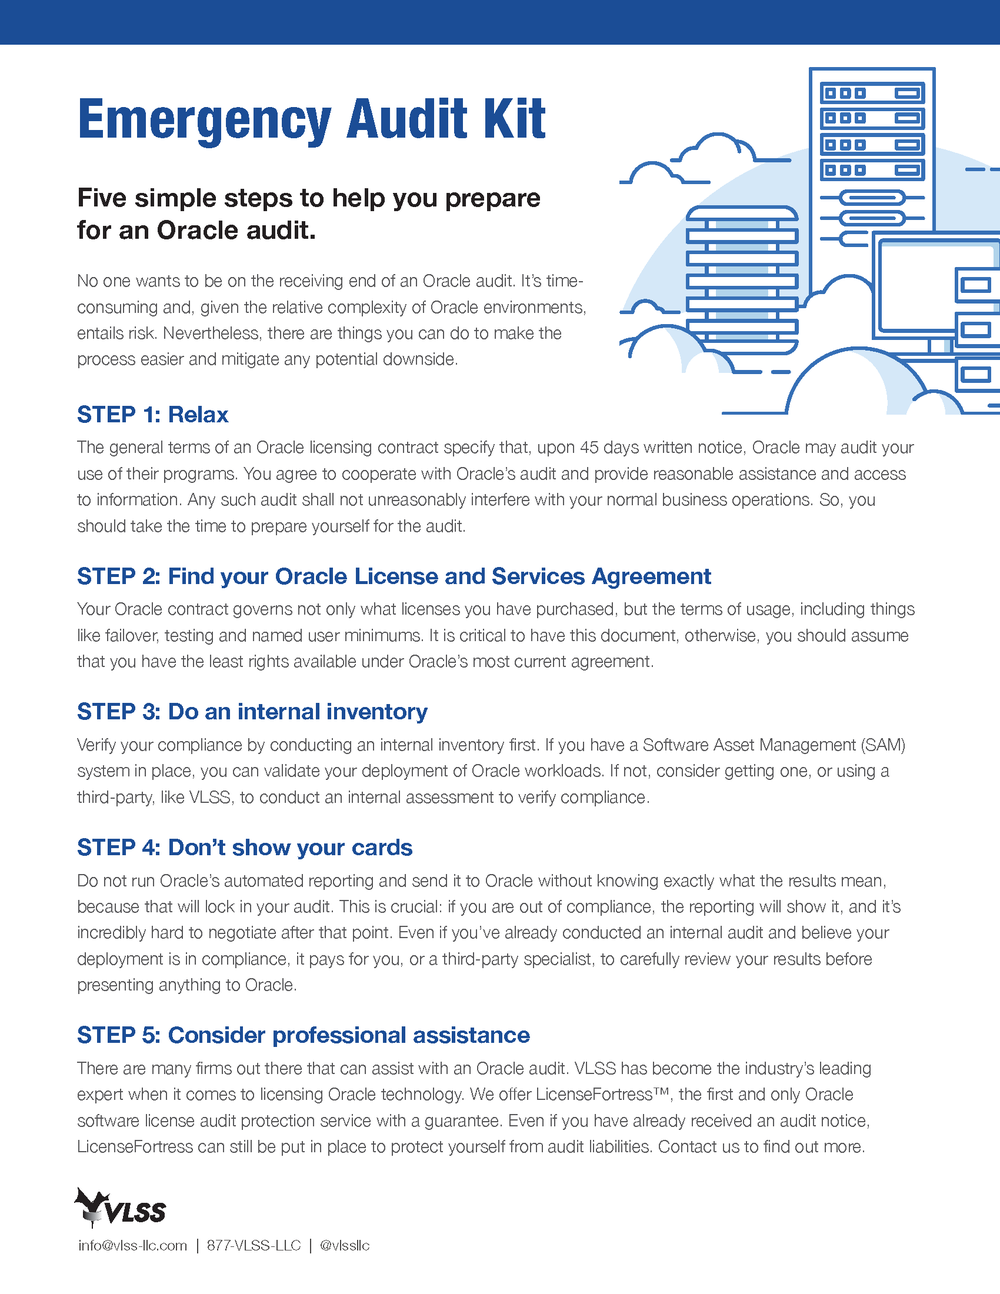 QUICK TIPS ON SURVIVING AN ORACLE AUDIT - <<<<  CLICK IMAGE TO DOWNLOAD